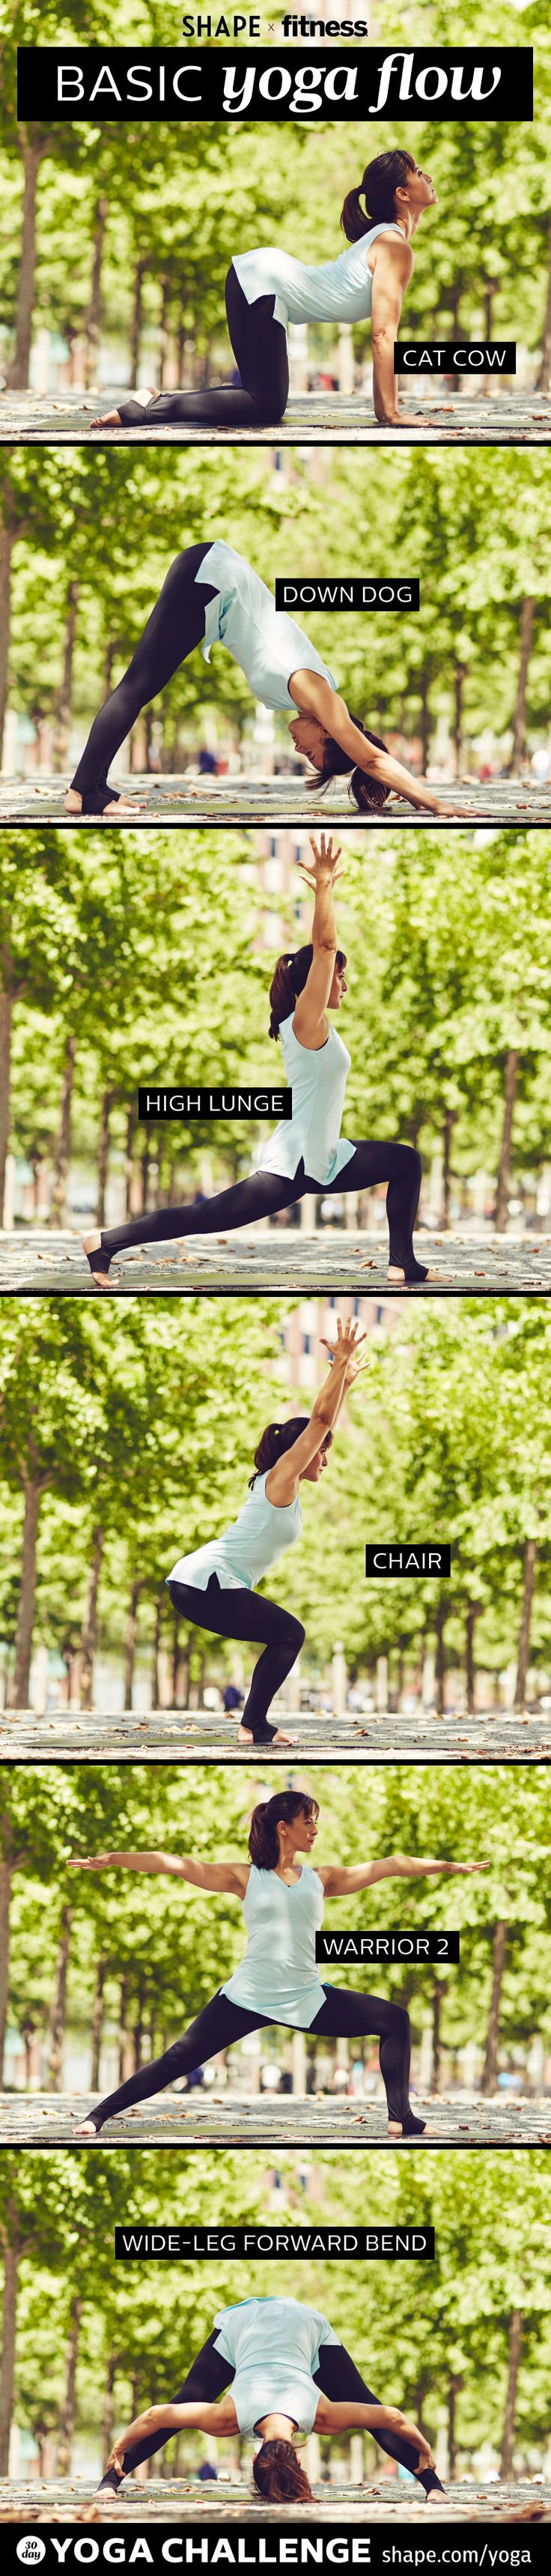 Start your week feeling refreshed and balanced with our Basic Yoga Flow From SHA...